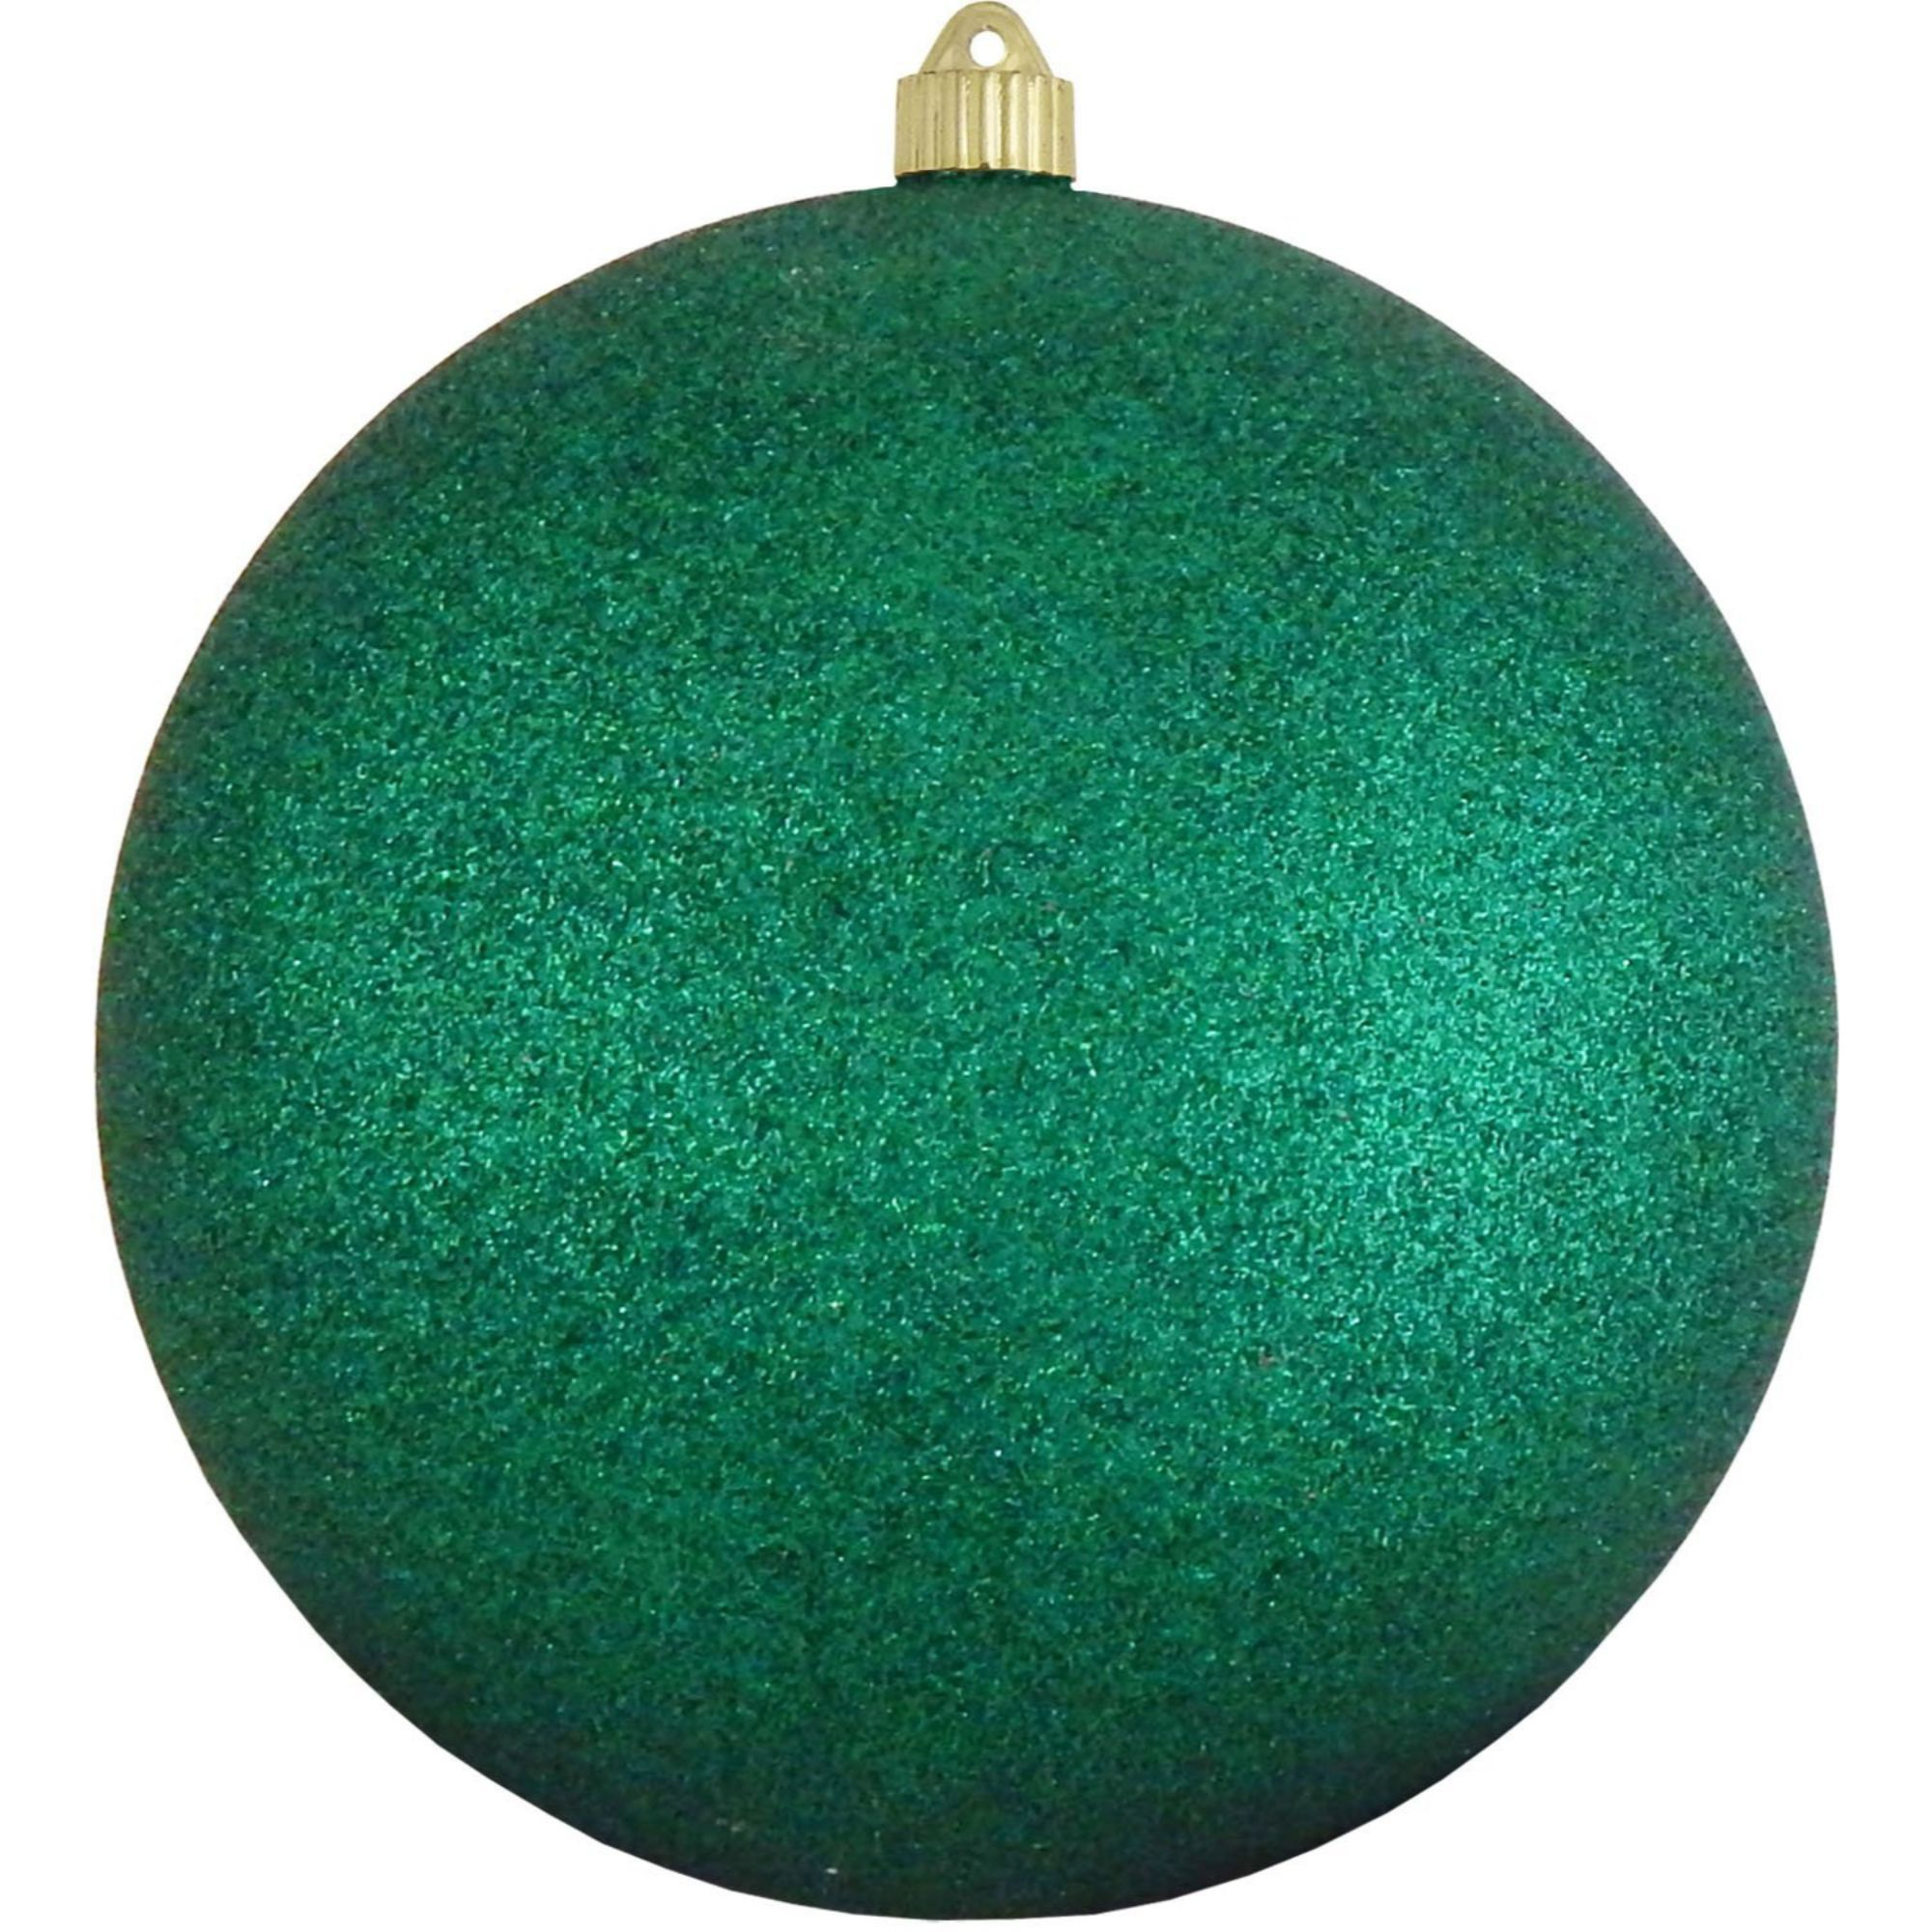 Glitter Emerald Green Shatterproof Christmas Ball Ornament 10 250mm Black Gold Christmas Colorful Christmas Decorations Ball Ornaments